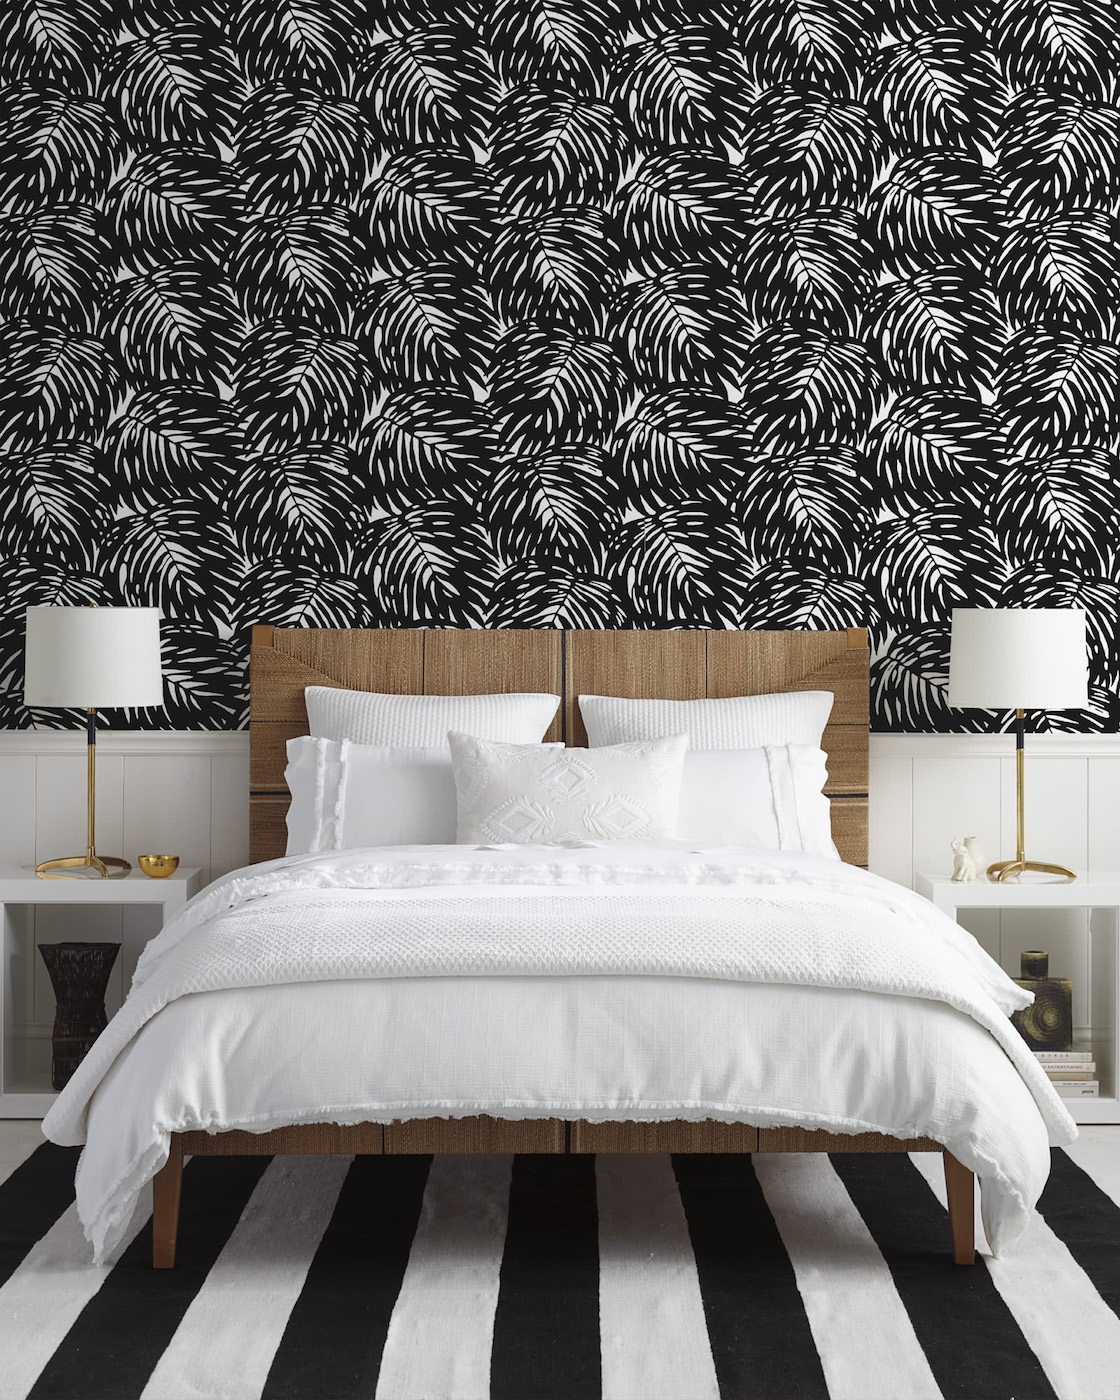 Personalize Your Home with Wallpaper